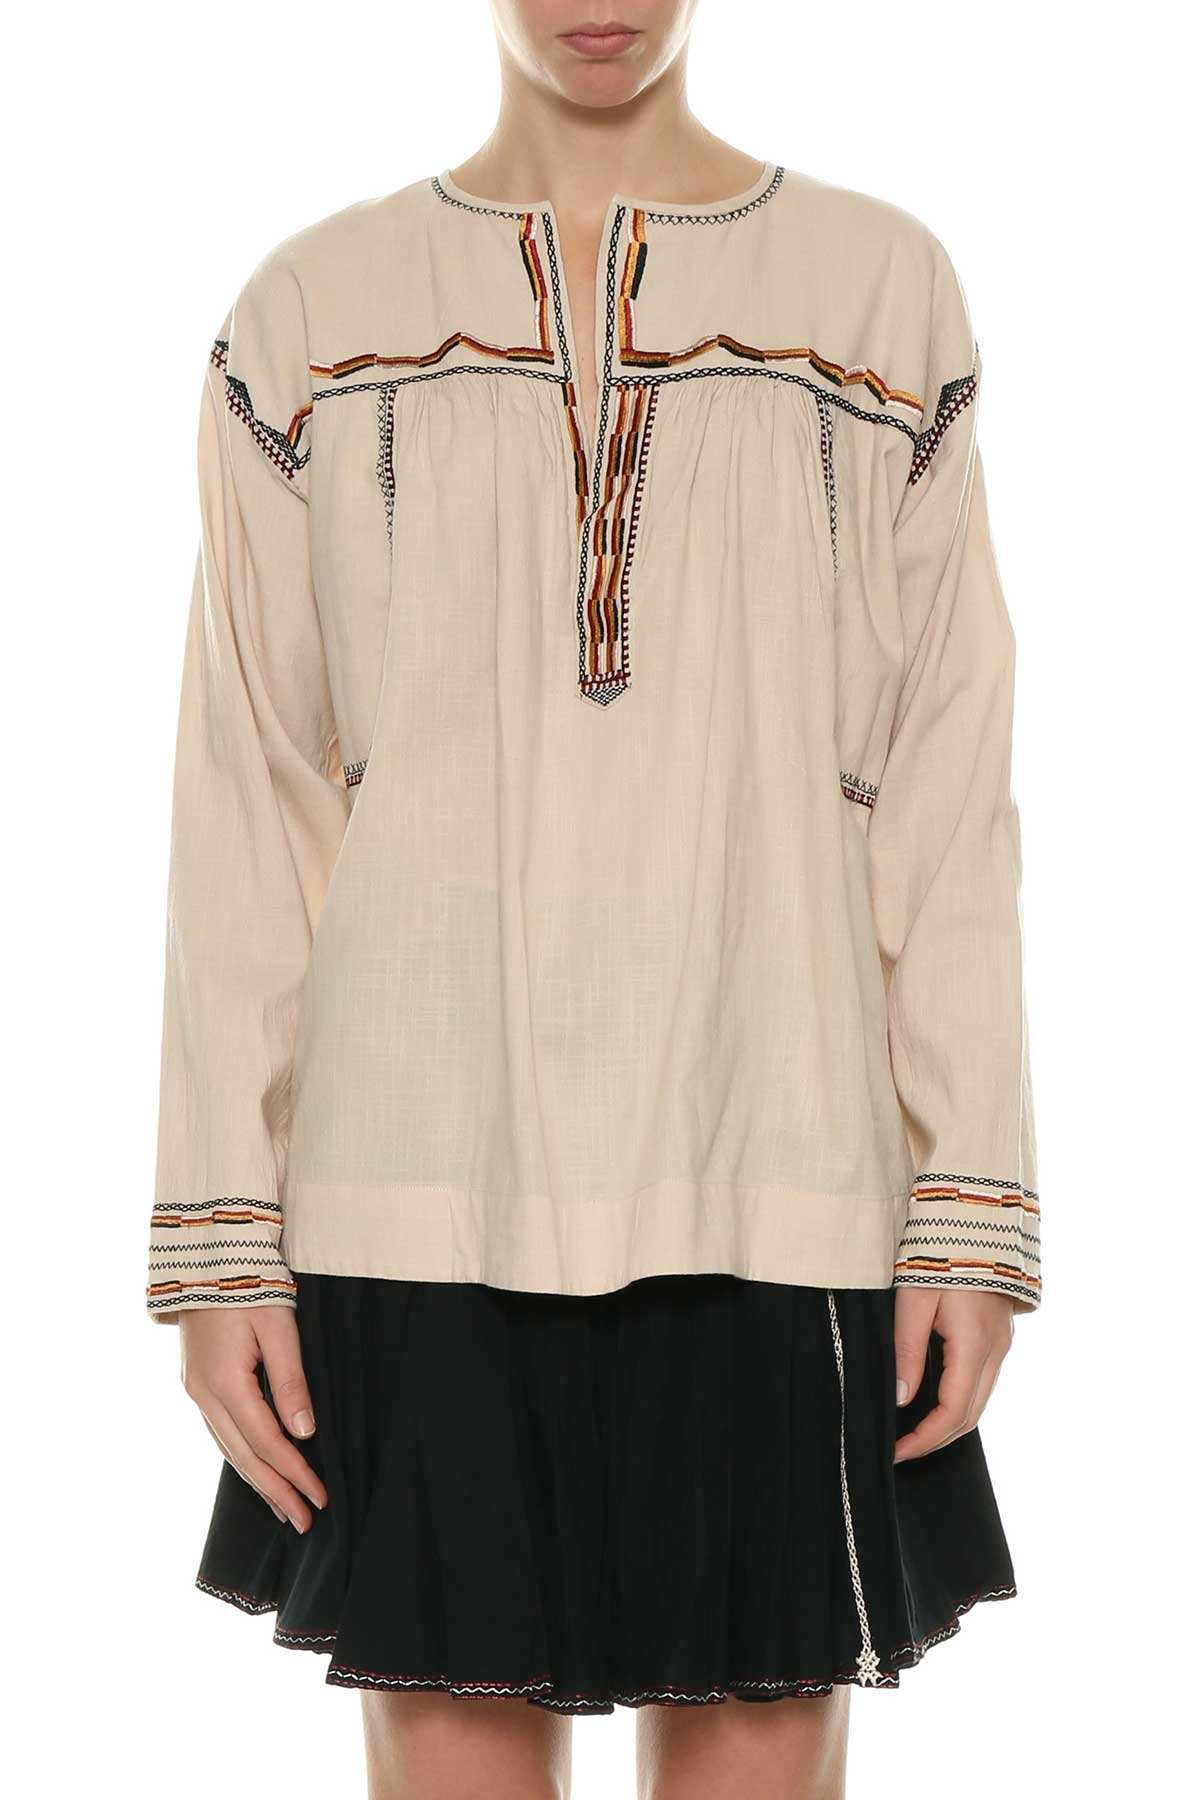 Black Bilcky embroidered blouse Isabel Marant Outlet Top Quality Cheap Visa Payment Authentic Sale Online Good Selling For Sale Cheap Big Sale CNmmpWAL